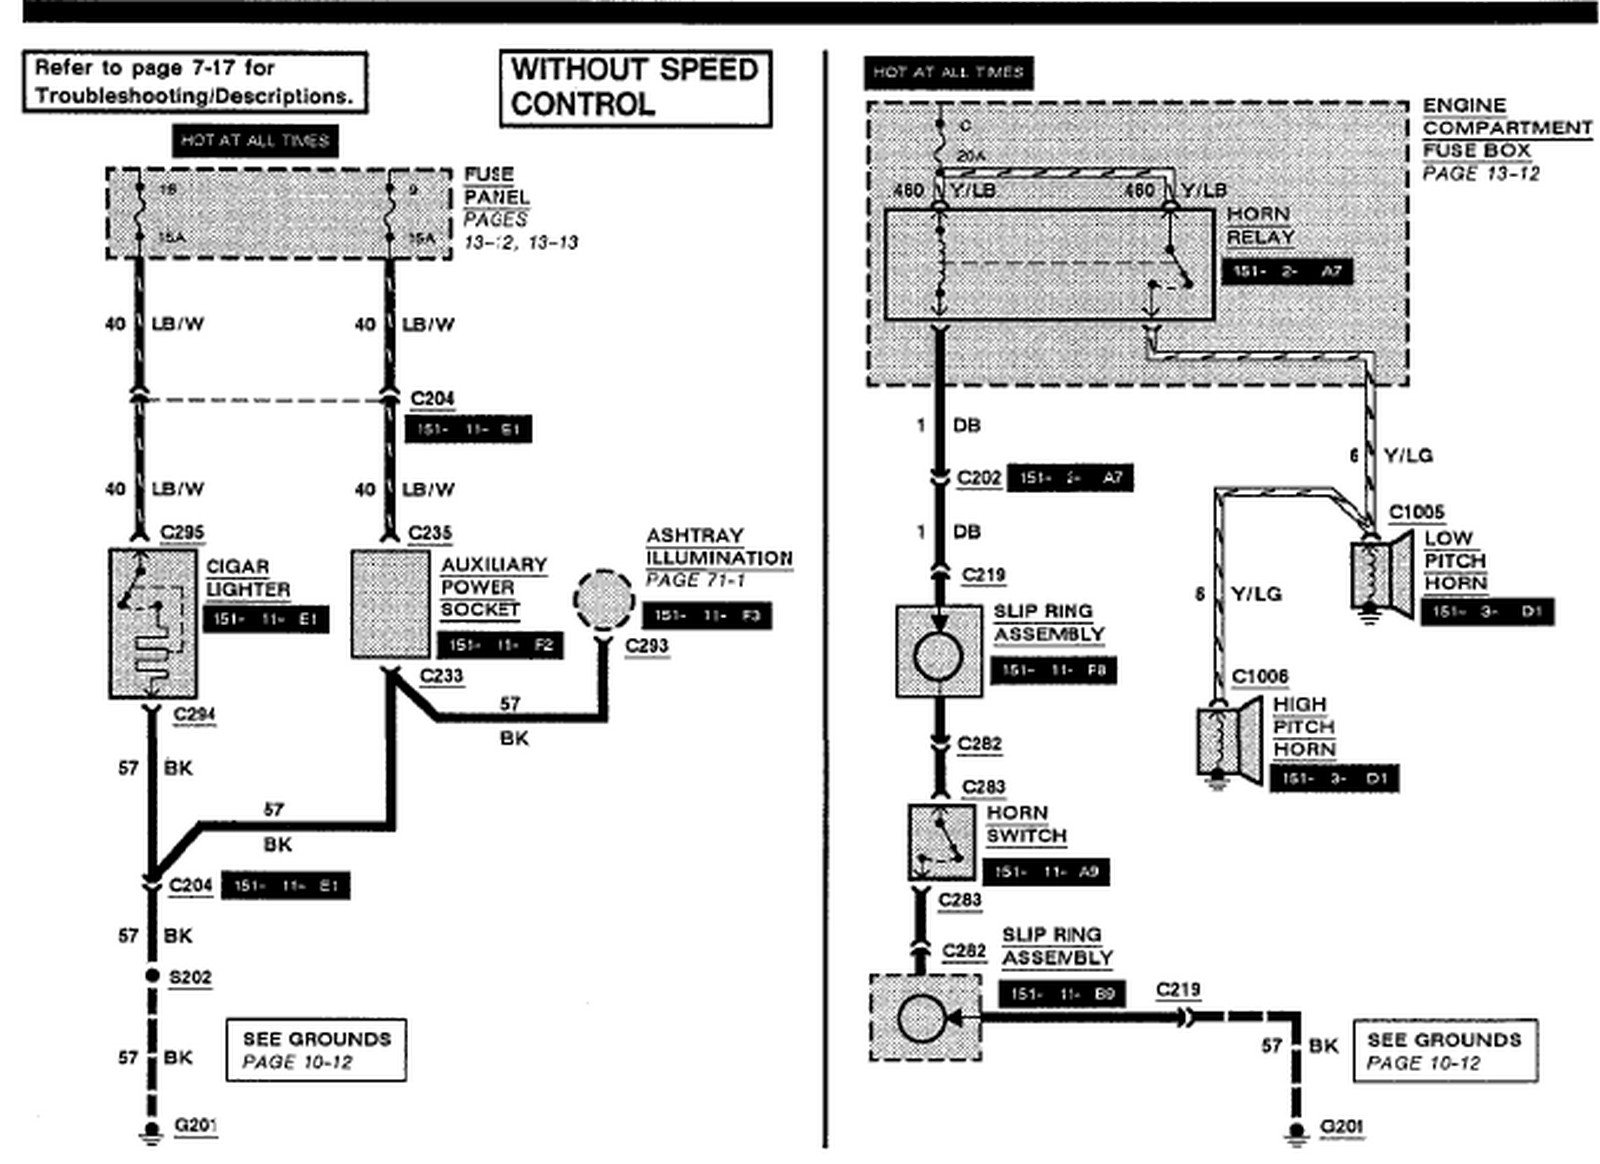 2005 Ford F150 Wiring Diagram Pdf from ww2.justanswer.com